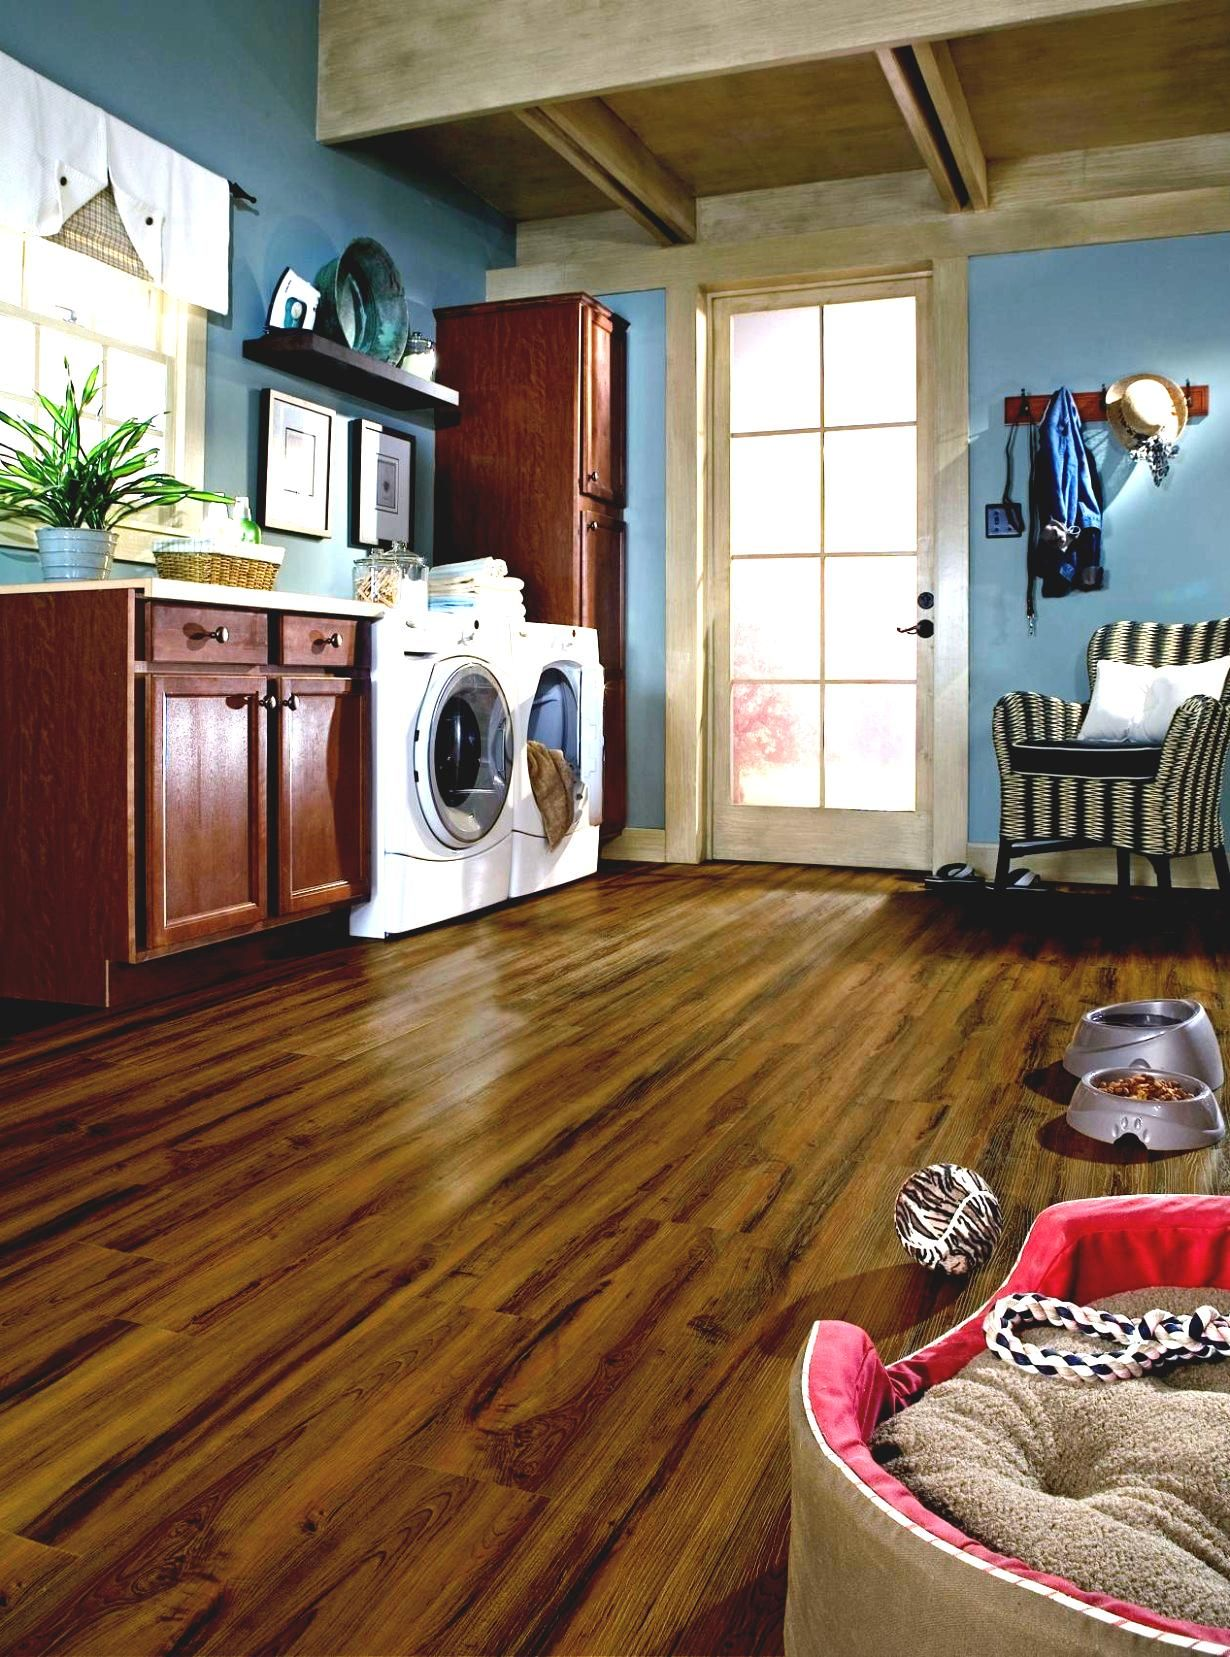 50 inspiring laundry room ideas to transform your space on effectively laundry room decoration ideas easy ideas to inspire you id=20620